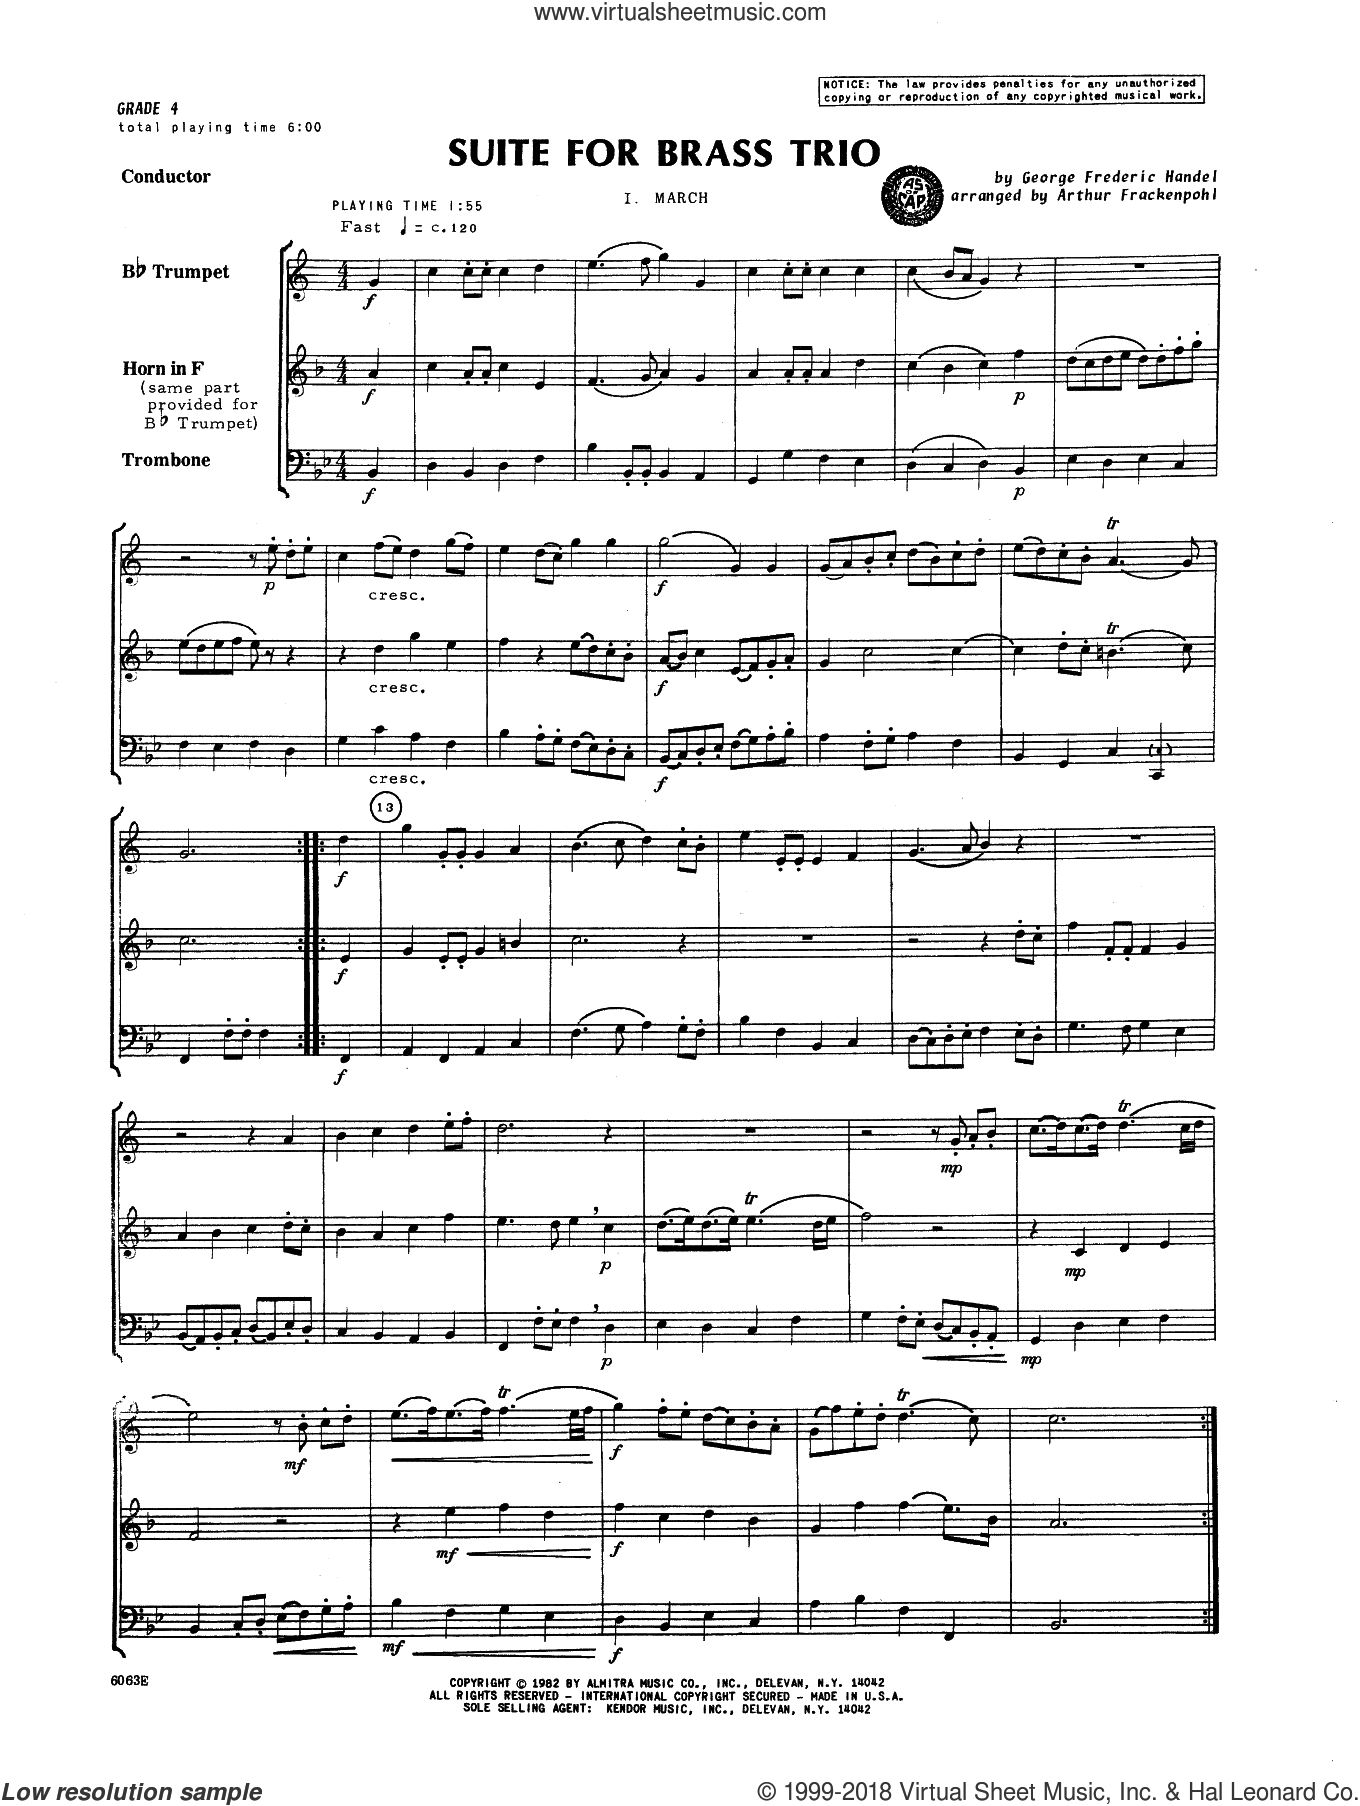 Suite For Brass Trio (COMPLETE) sheet music for brass trio by George Frideric Handel and Arthur Frackenpohl, classical score, intermediate brass trio. Score Image Preview.